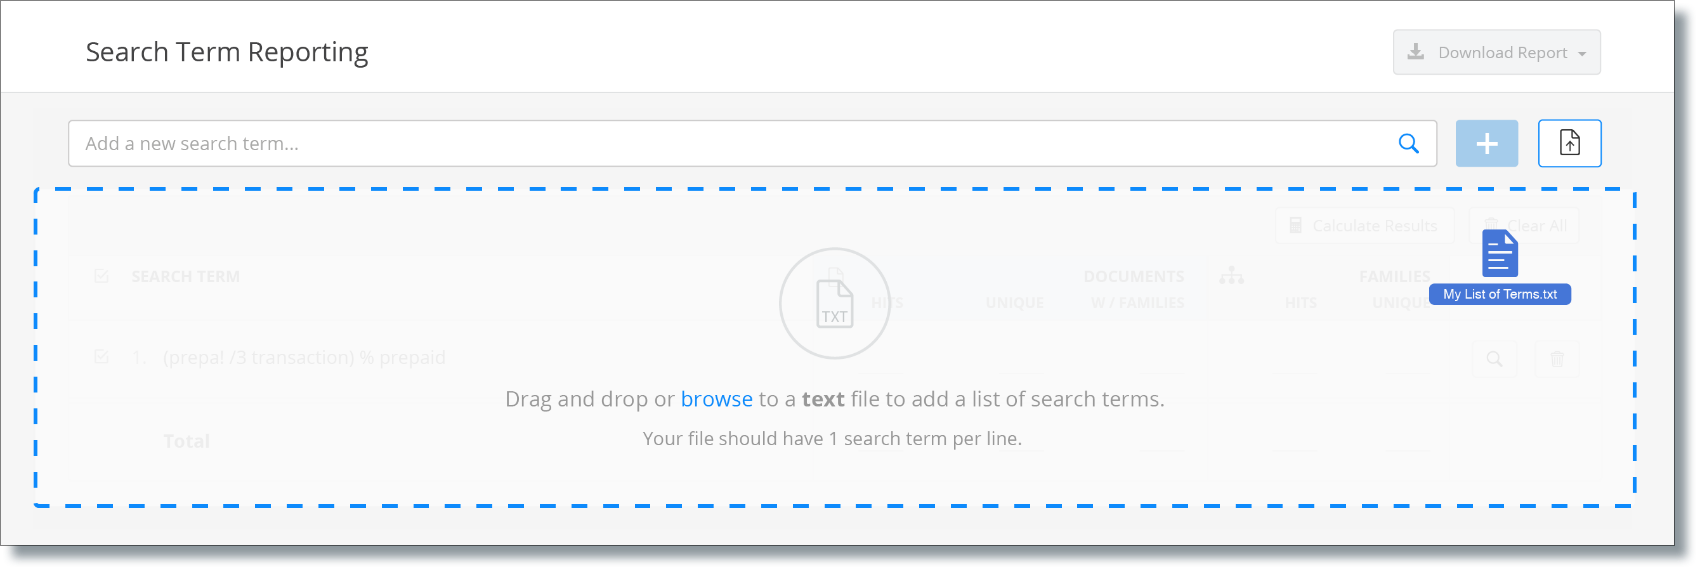 search-term-reporting-drag-drop.png